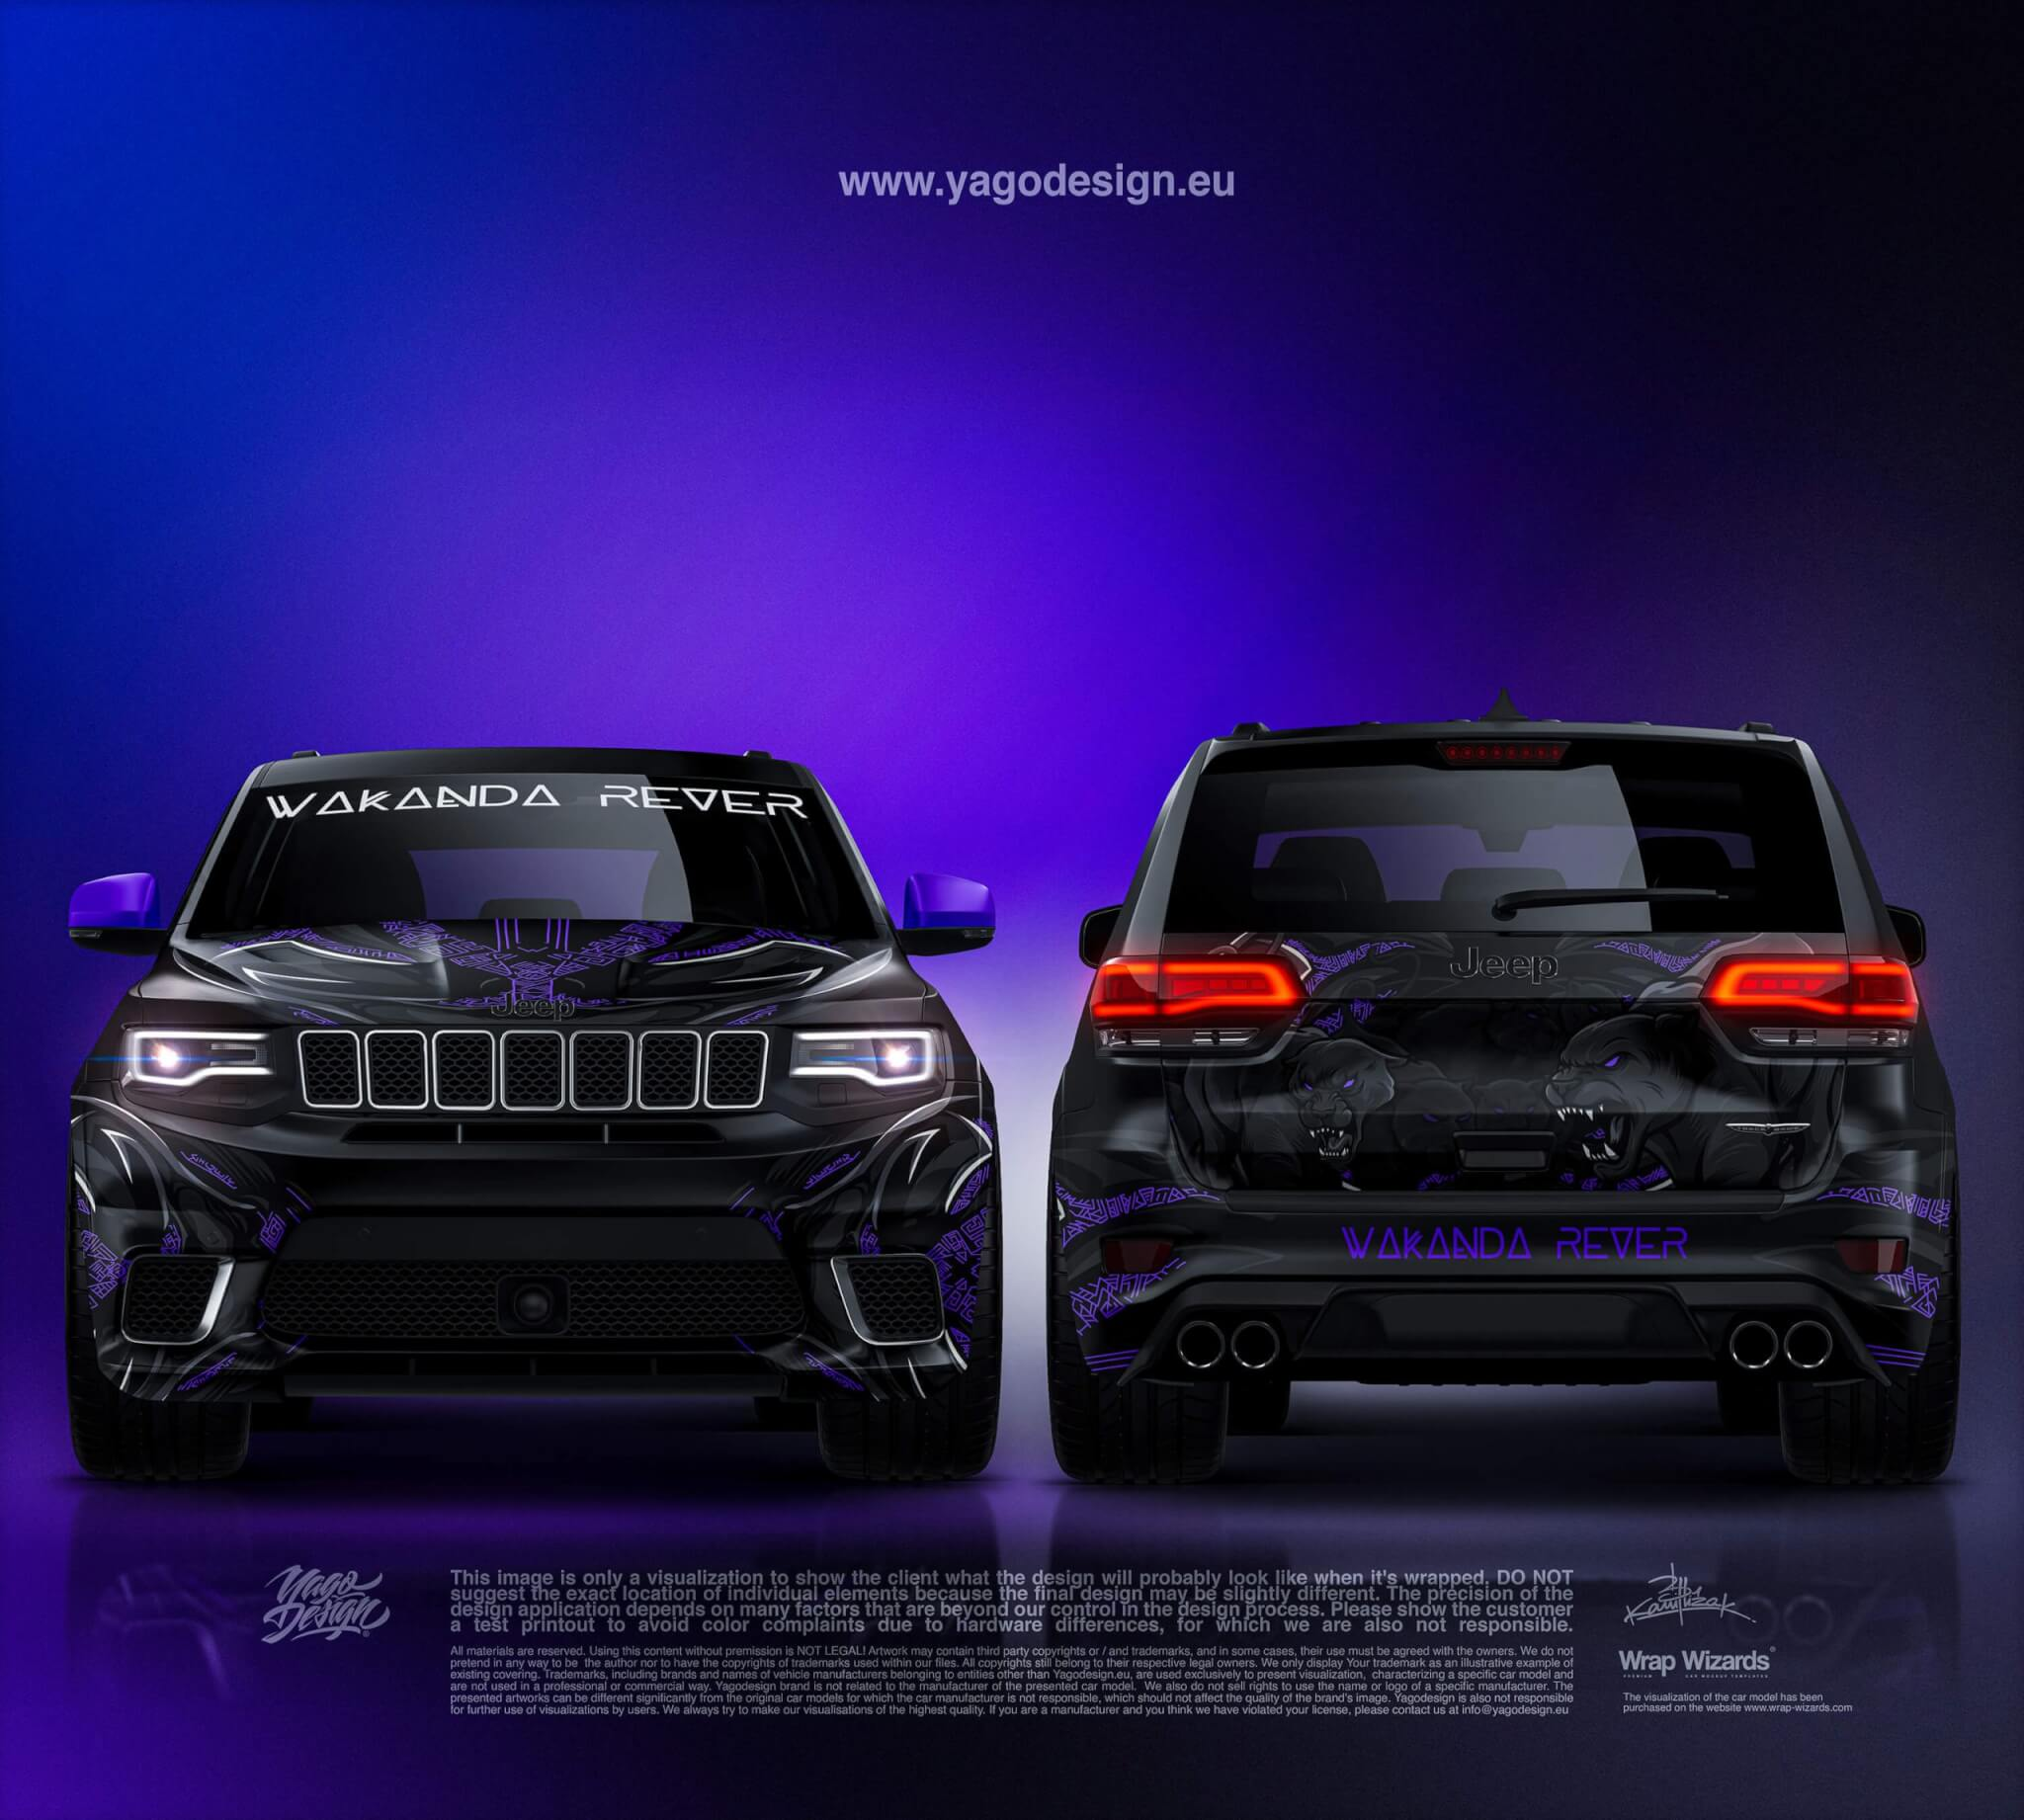 BLACK-PANTHER-JOEEP-GRAND-CHEEROKE-BY-YAGODESIGN-FRONT&REAR-v3-3000px